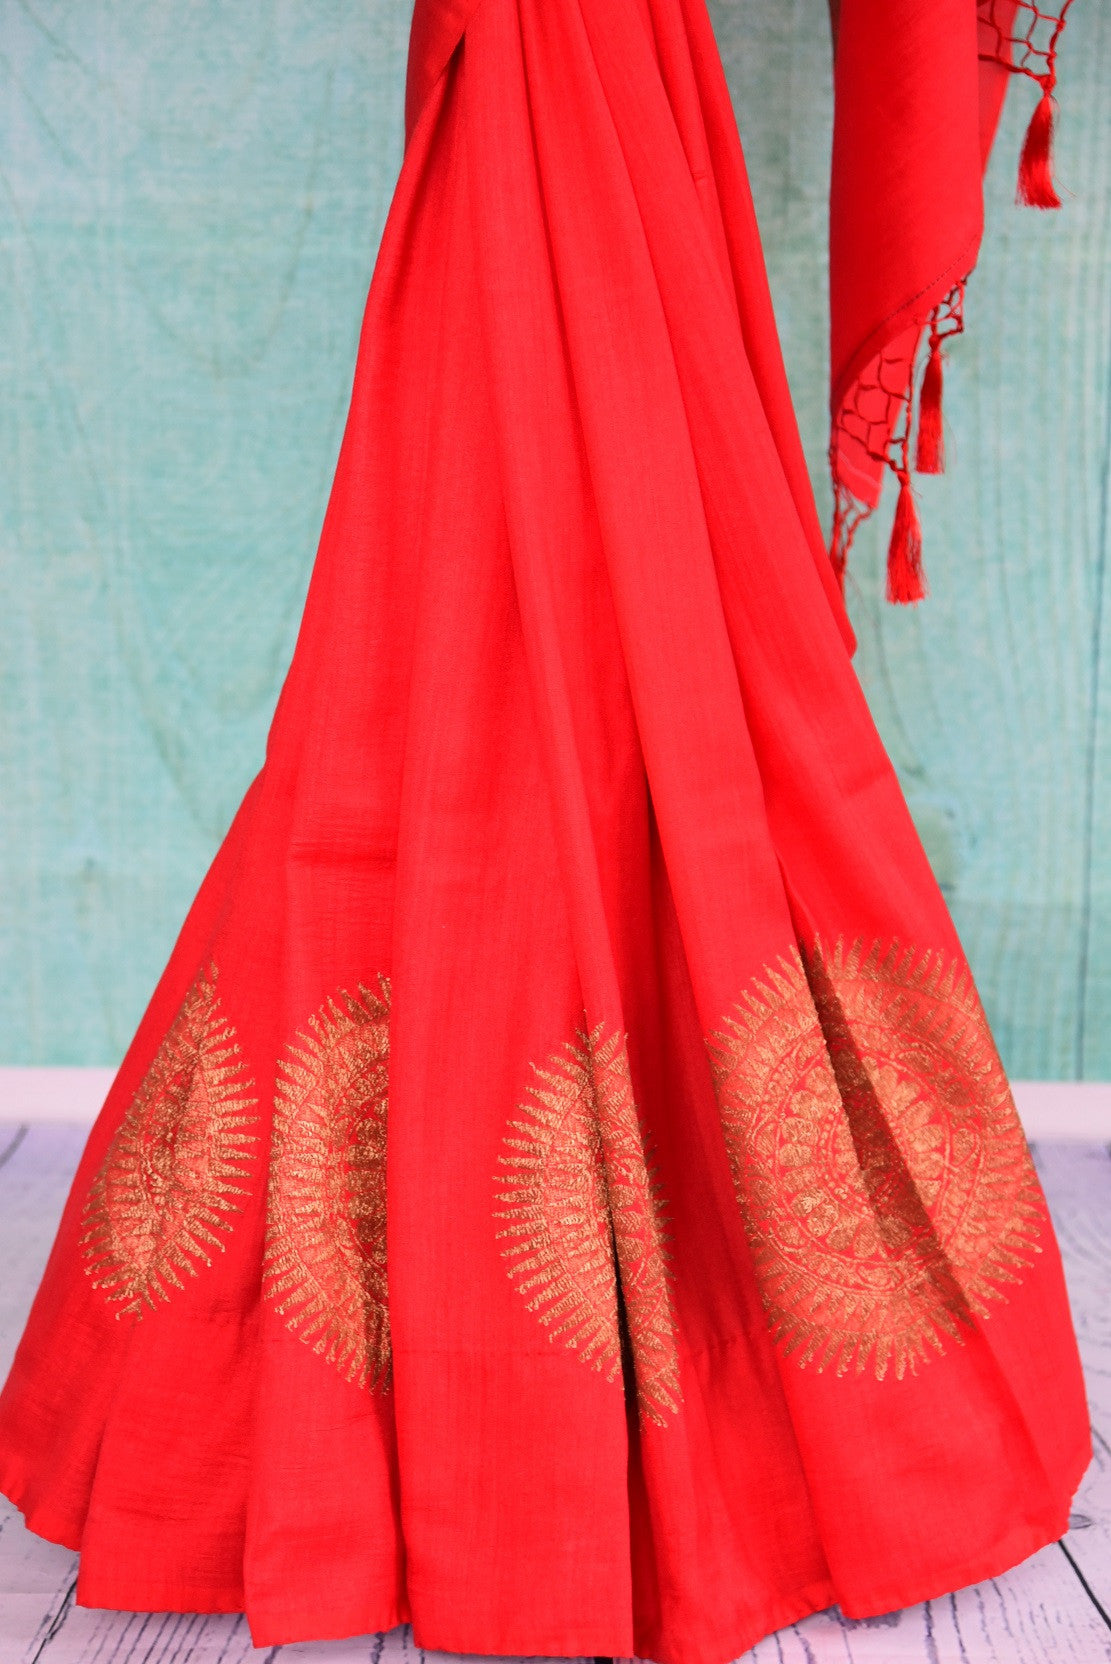 90D445 Traditional tussar georgette saree ideal for Indian wedding functions. The vibrant red & golden saree can be bought at Pure Elegance - our Indian clothing store in USA.